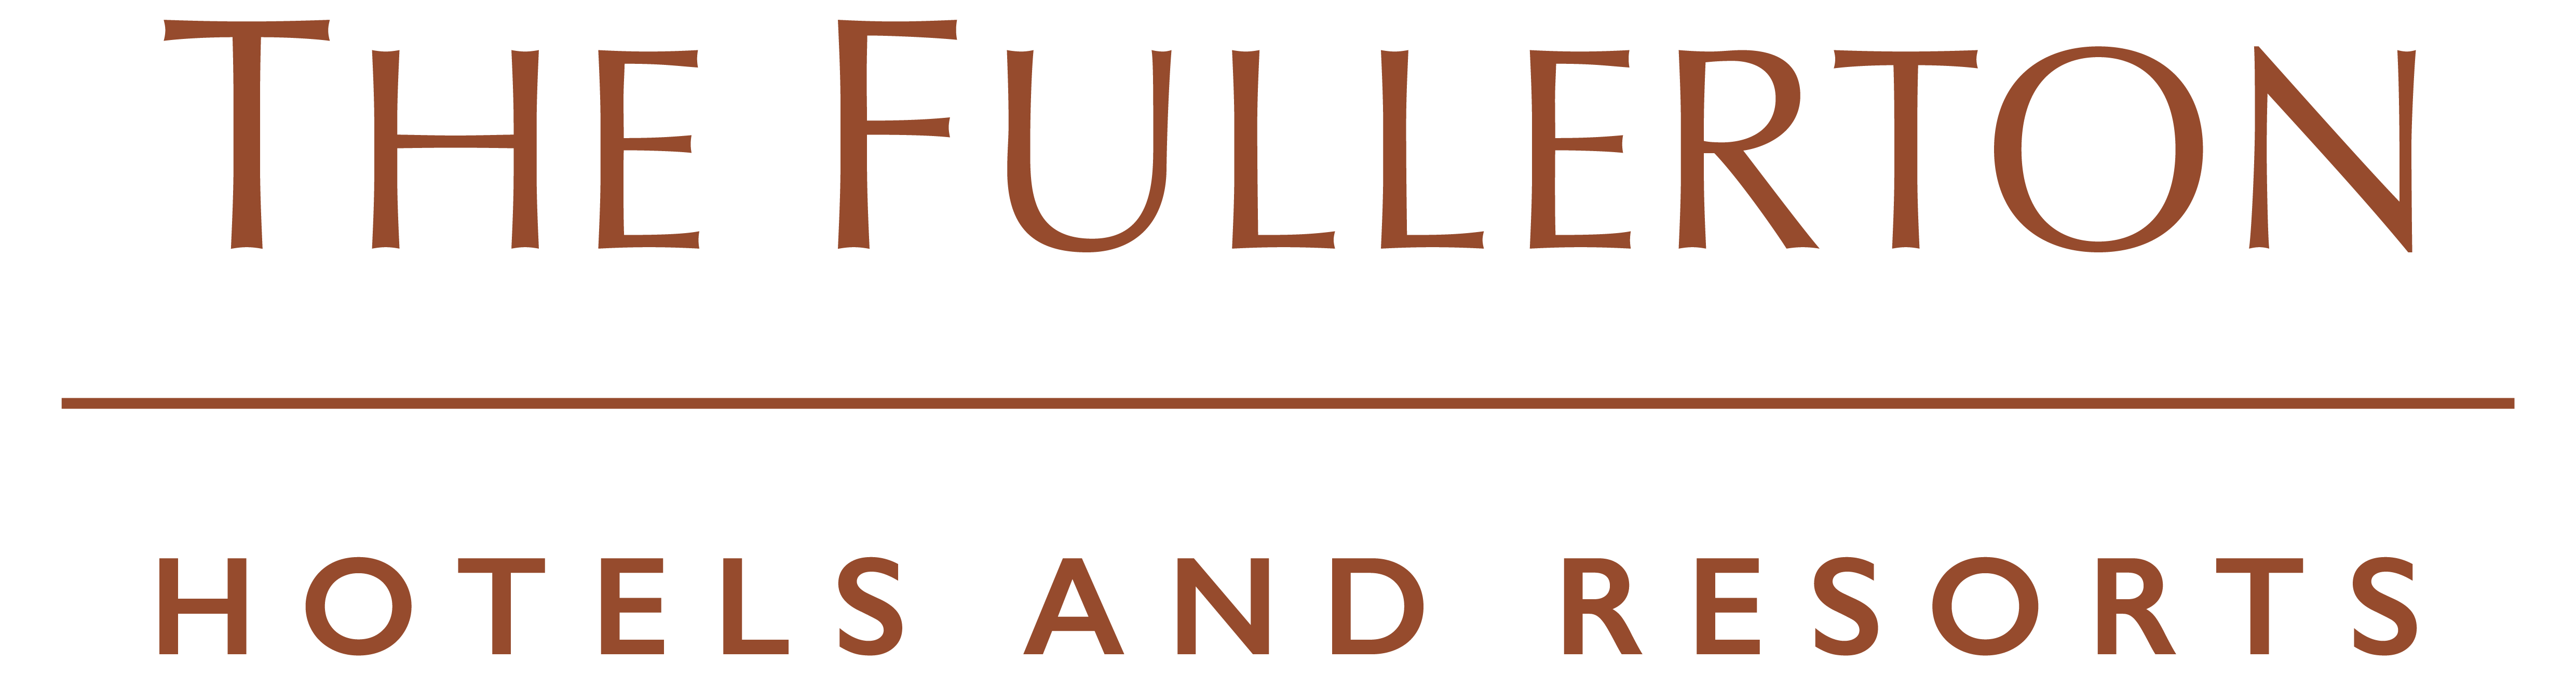 The Fullerton Hotels and Resorts